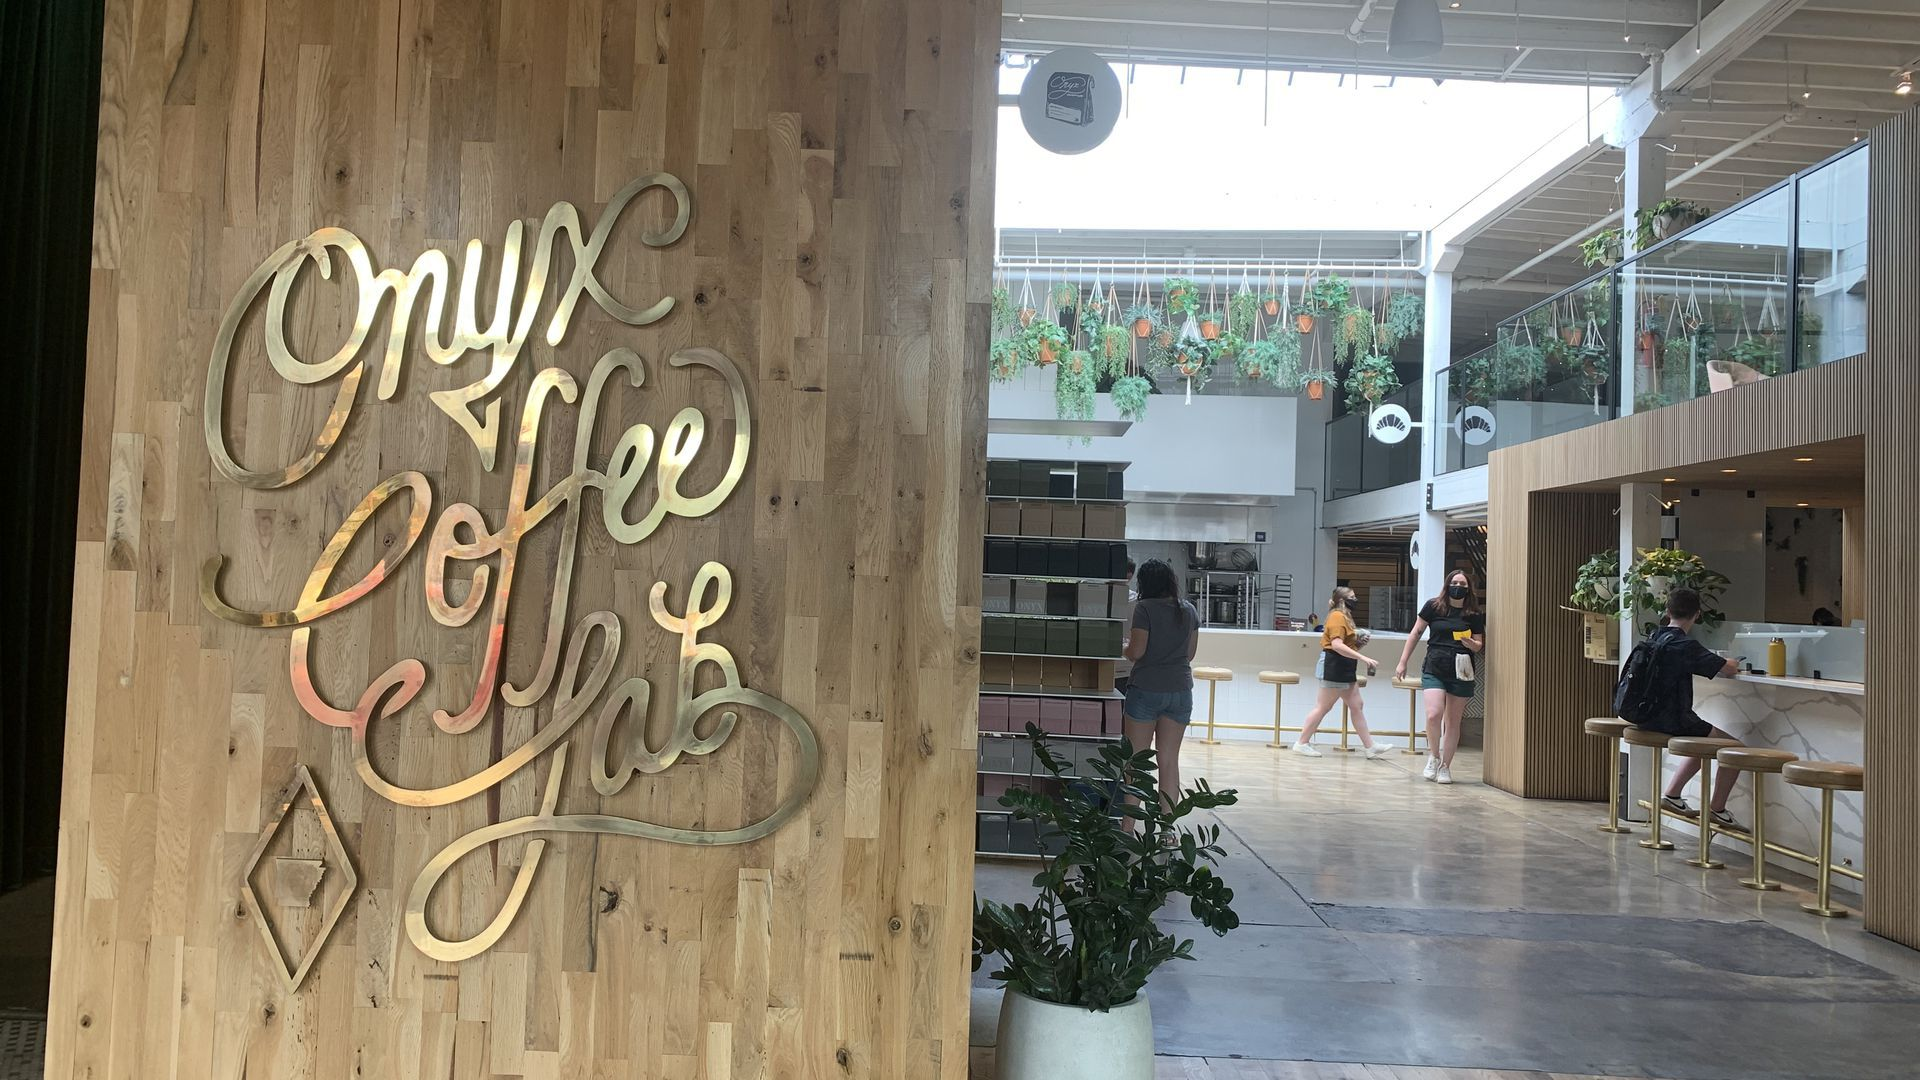 The entrance to Onyx Coffee Lab, with a large stylized sign showcasing the business' name.